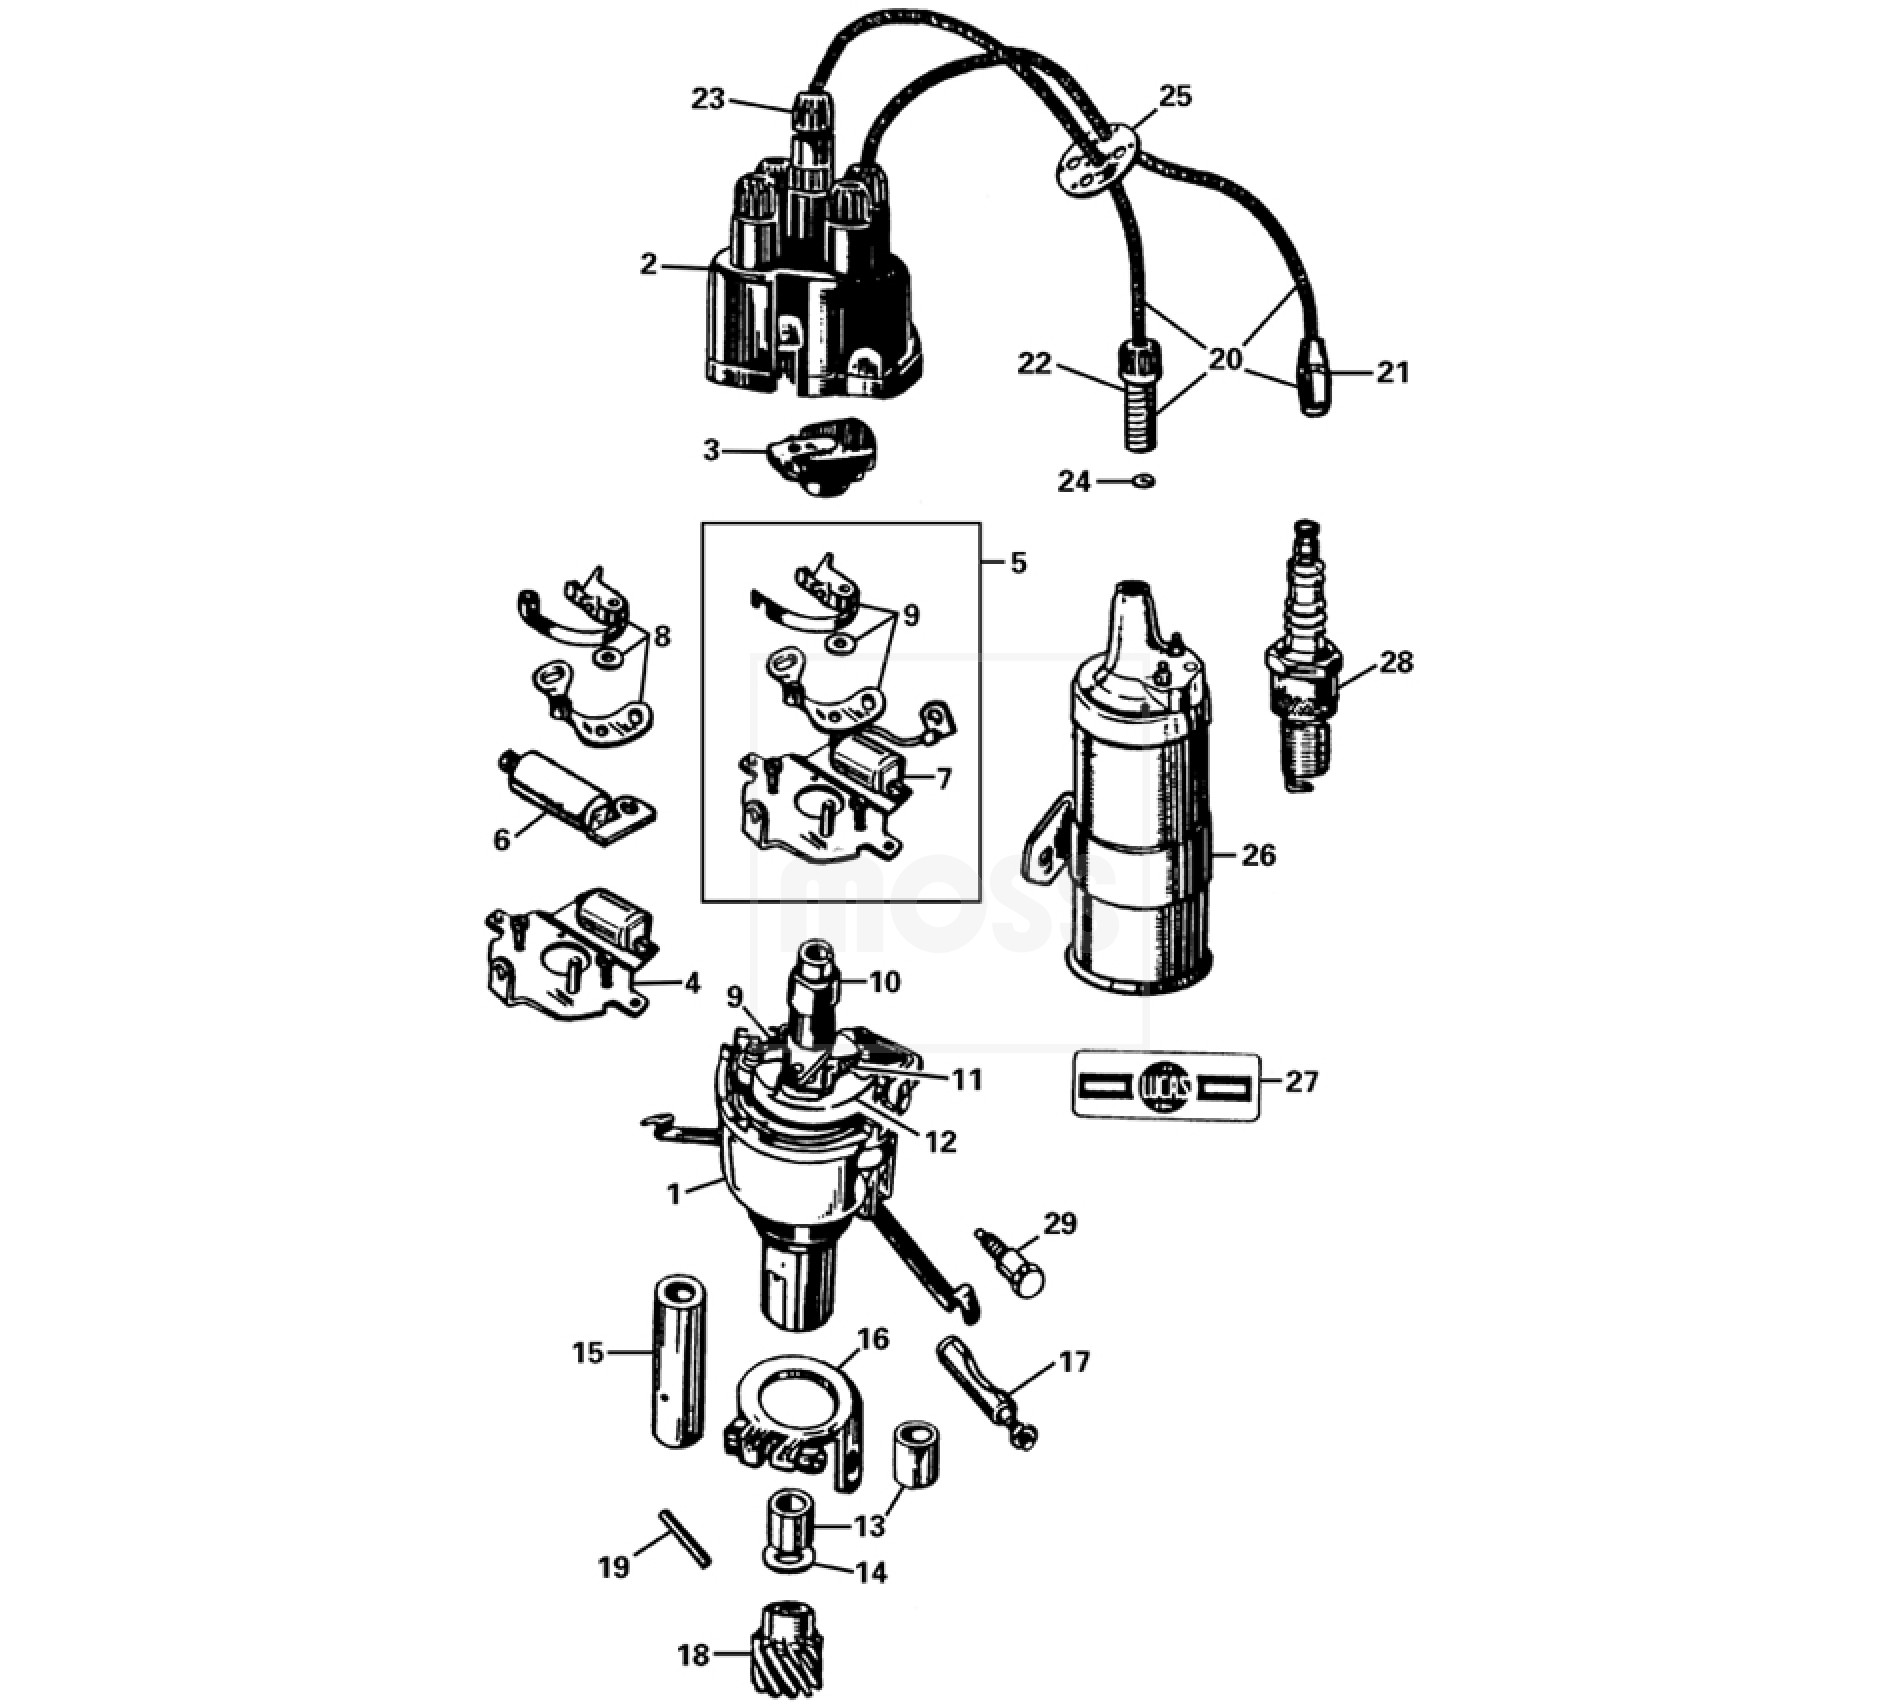 ignition system - t type - ignition system - electrical - t type - mg